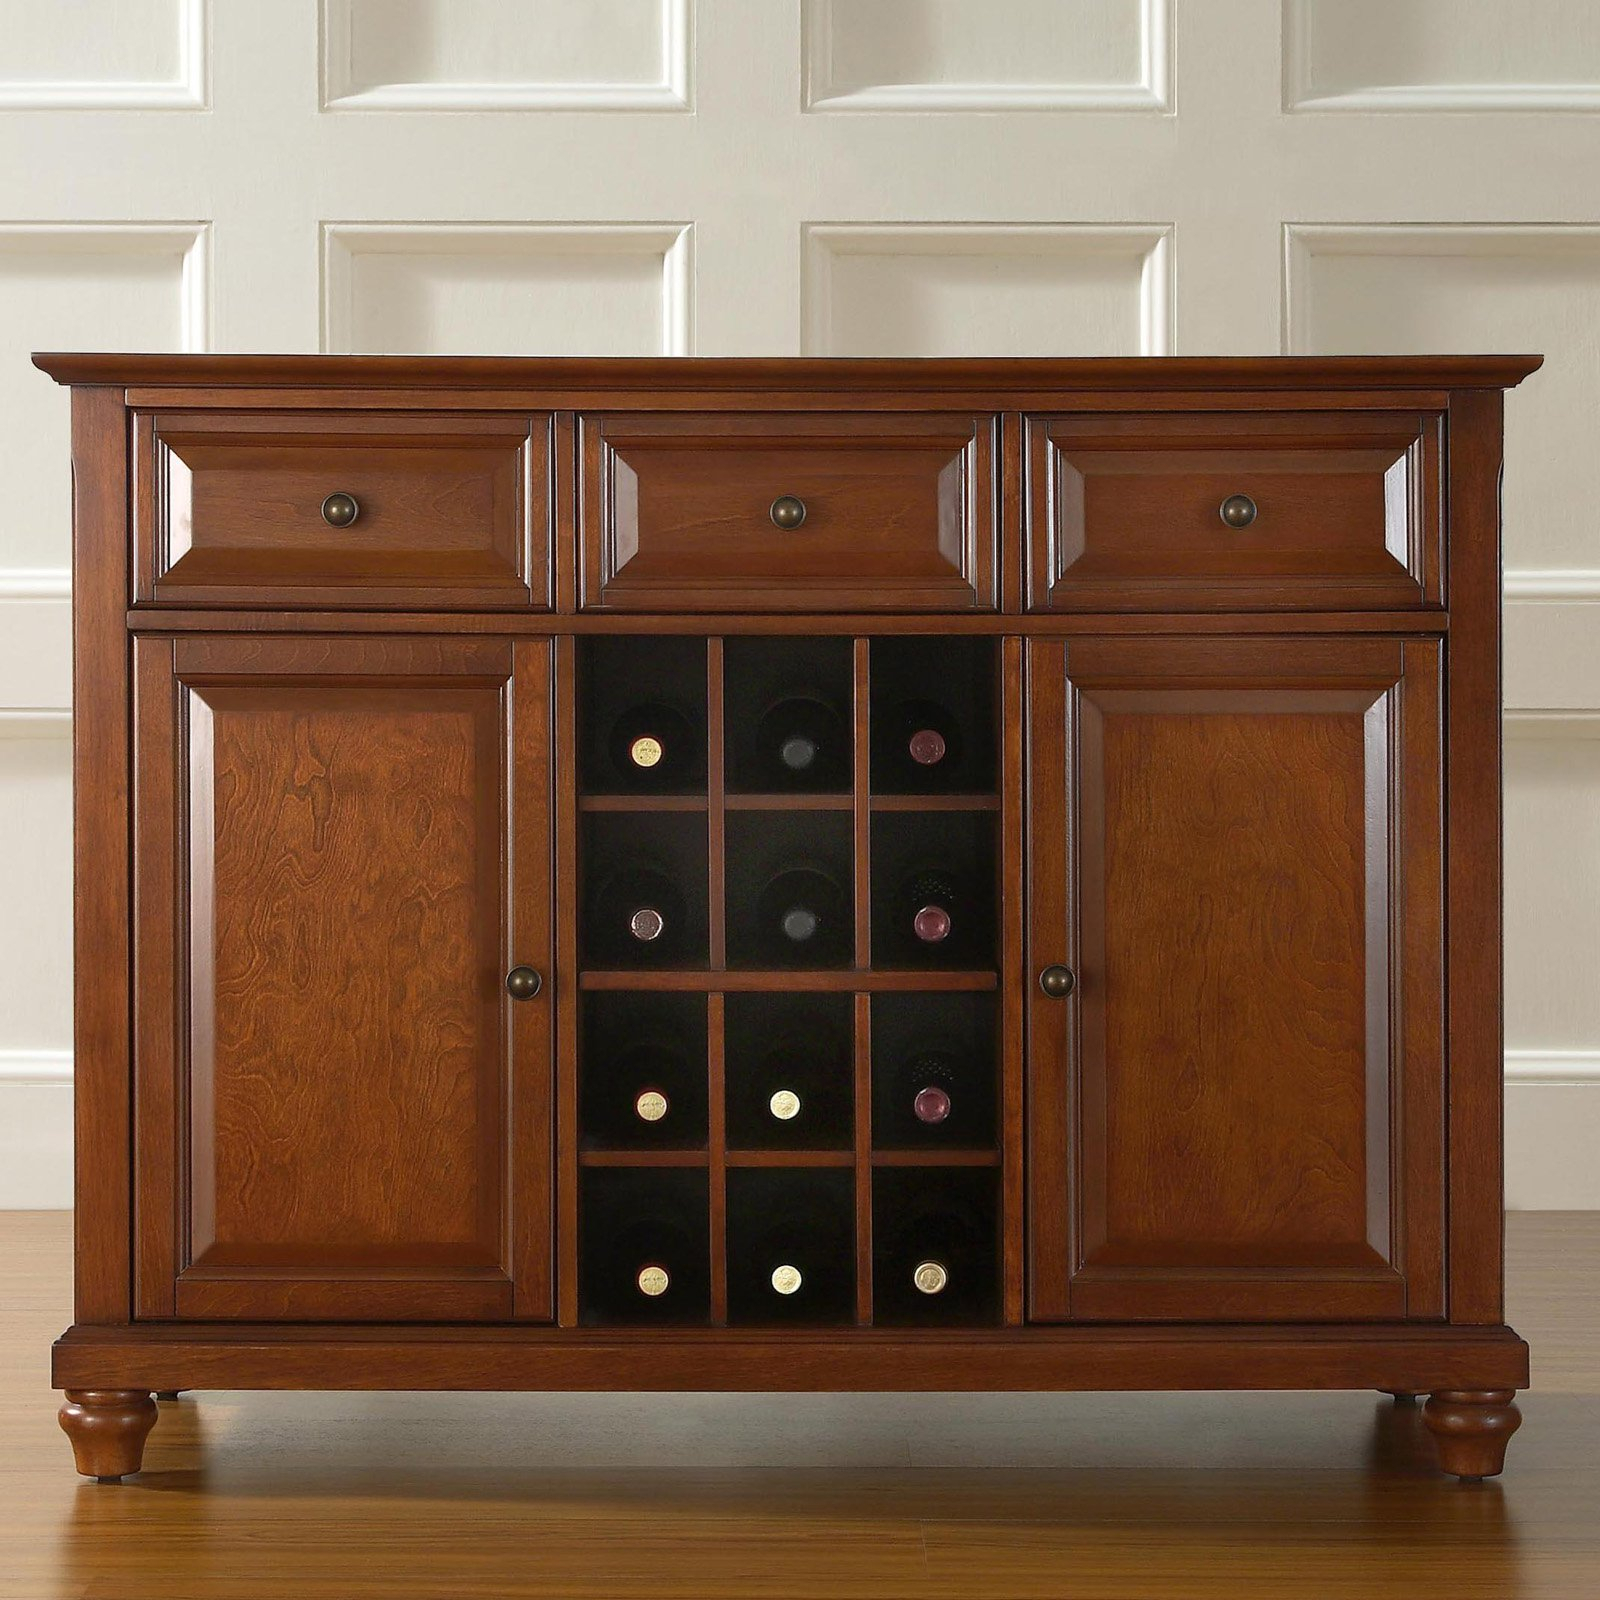 Crosley Furniture Cambridge Buffet Server And Sideboard Cabinet With Wine Storage Pertaining To Wooden Buffets With Two Side Door Storage Cabinets And Stemware Rack (View 15 of 30)